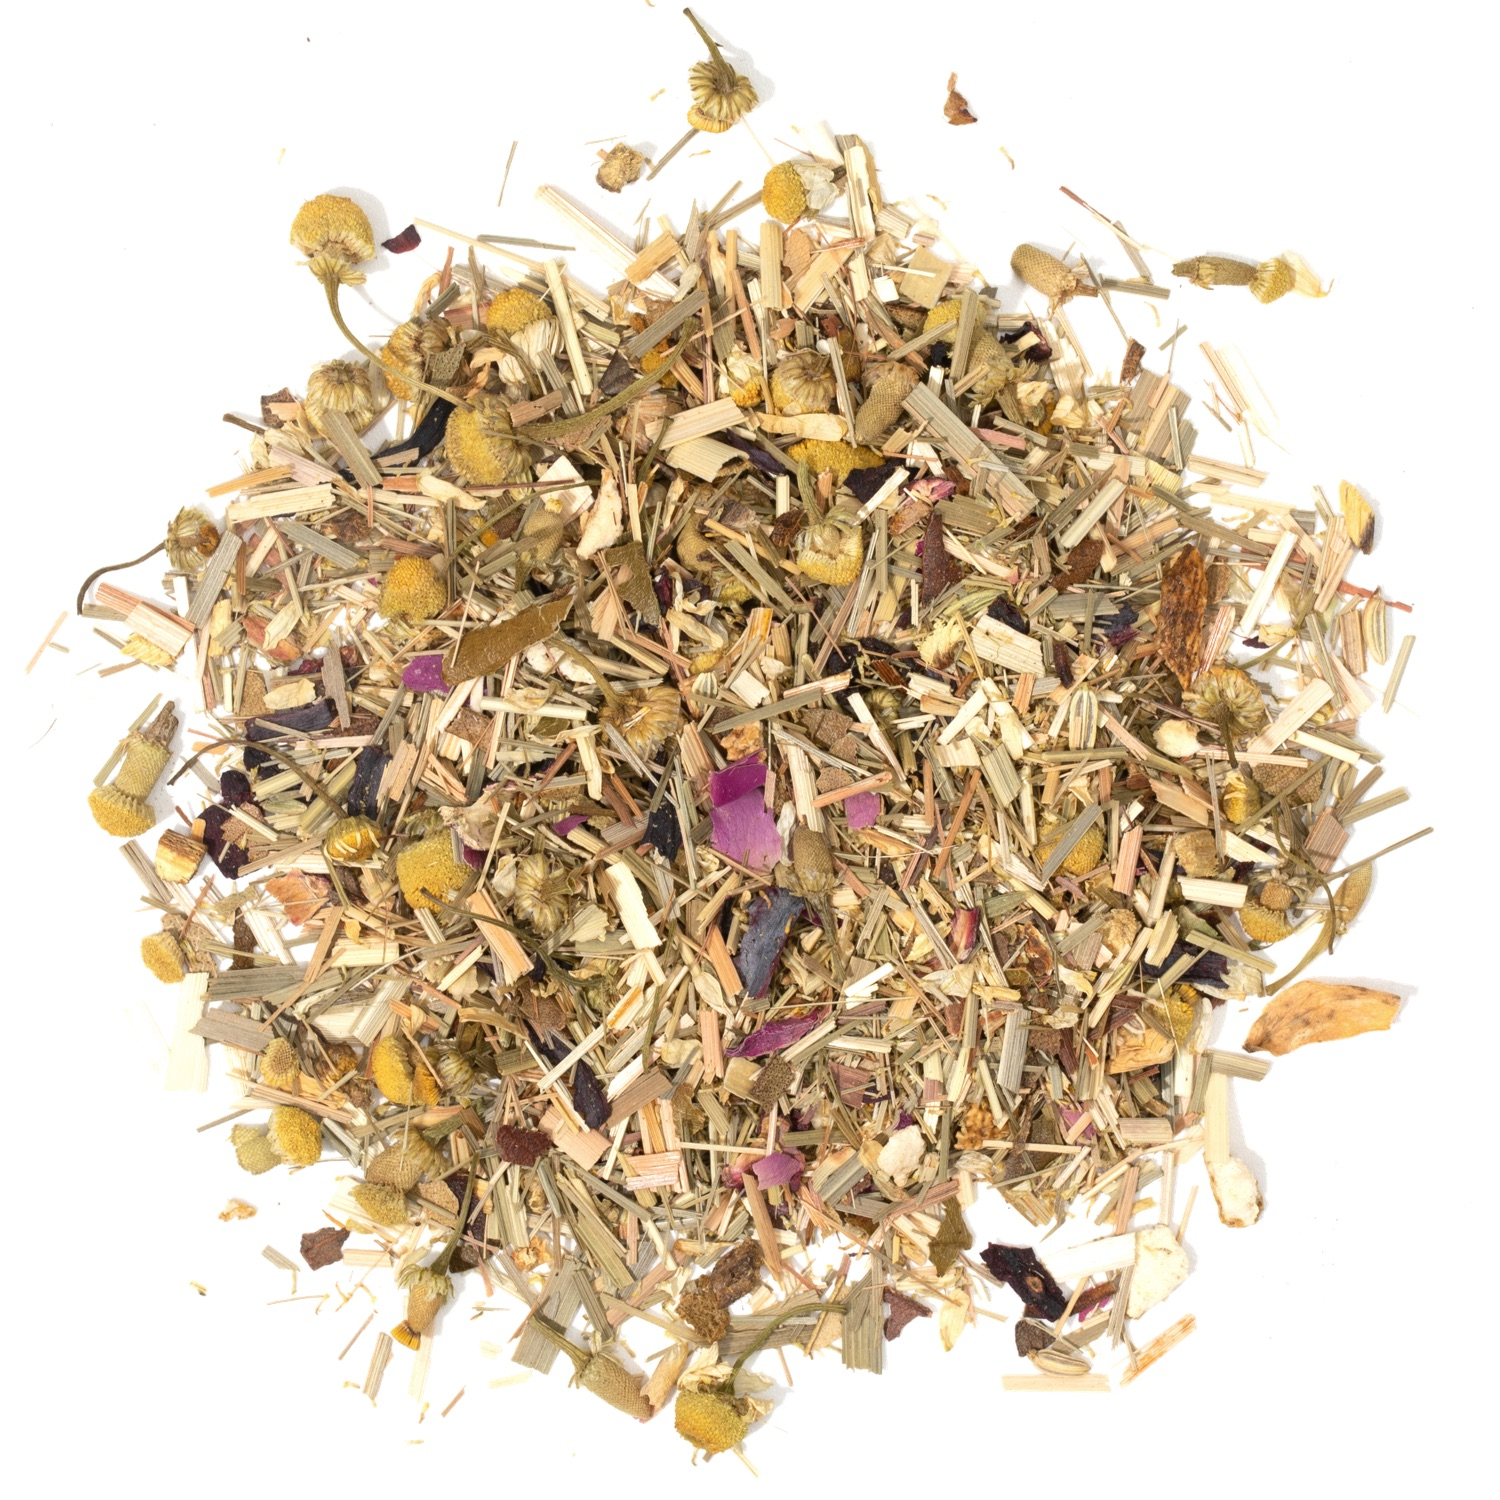 Splash of loose leaf herbal tea.